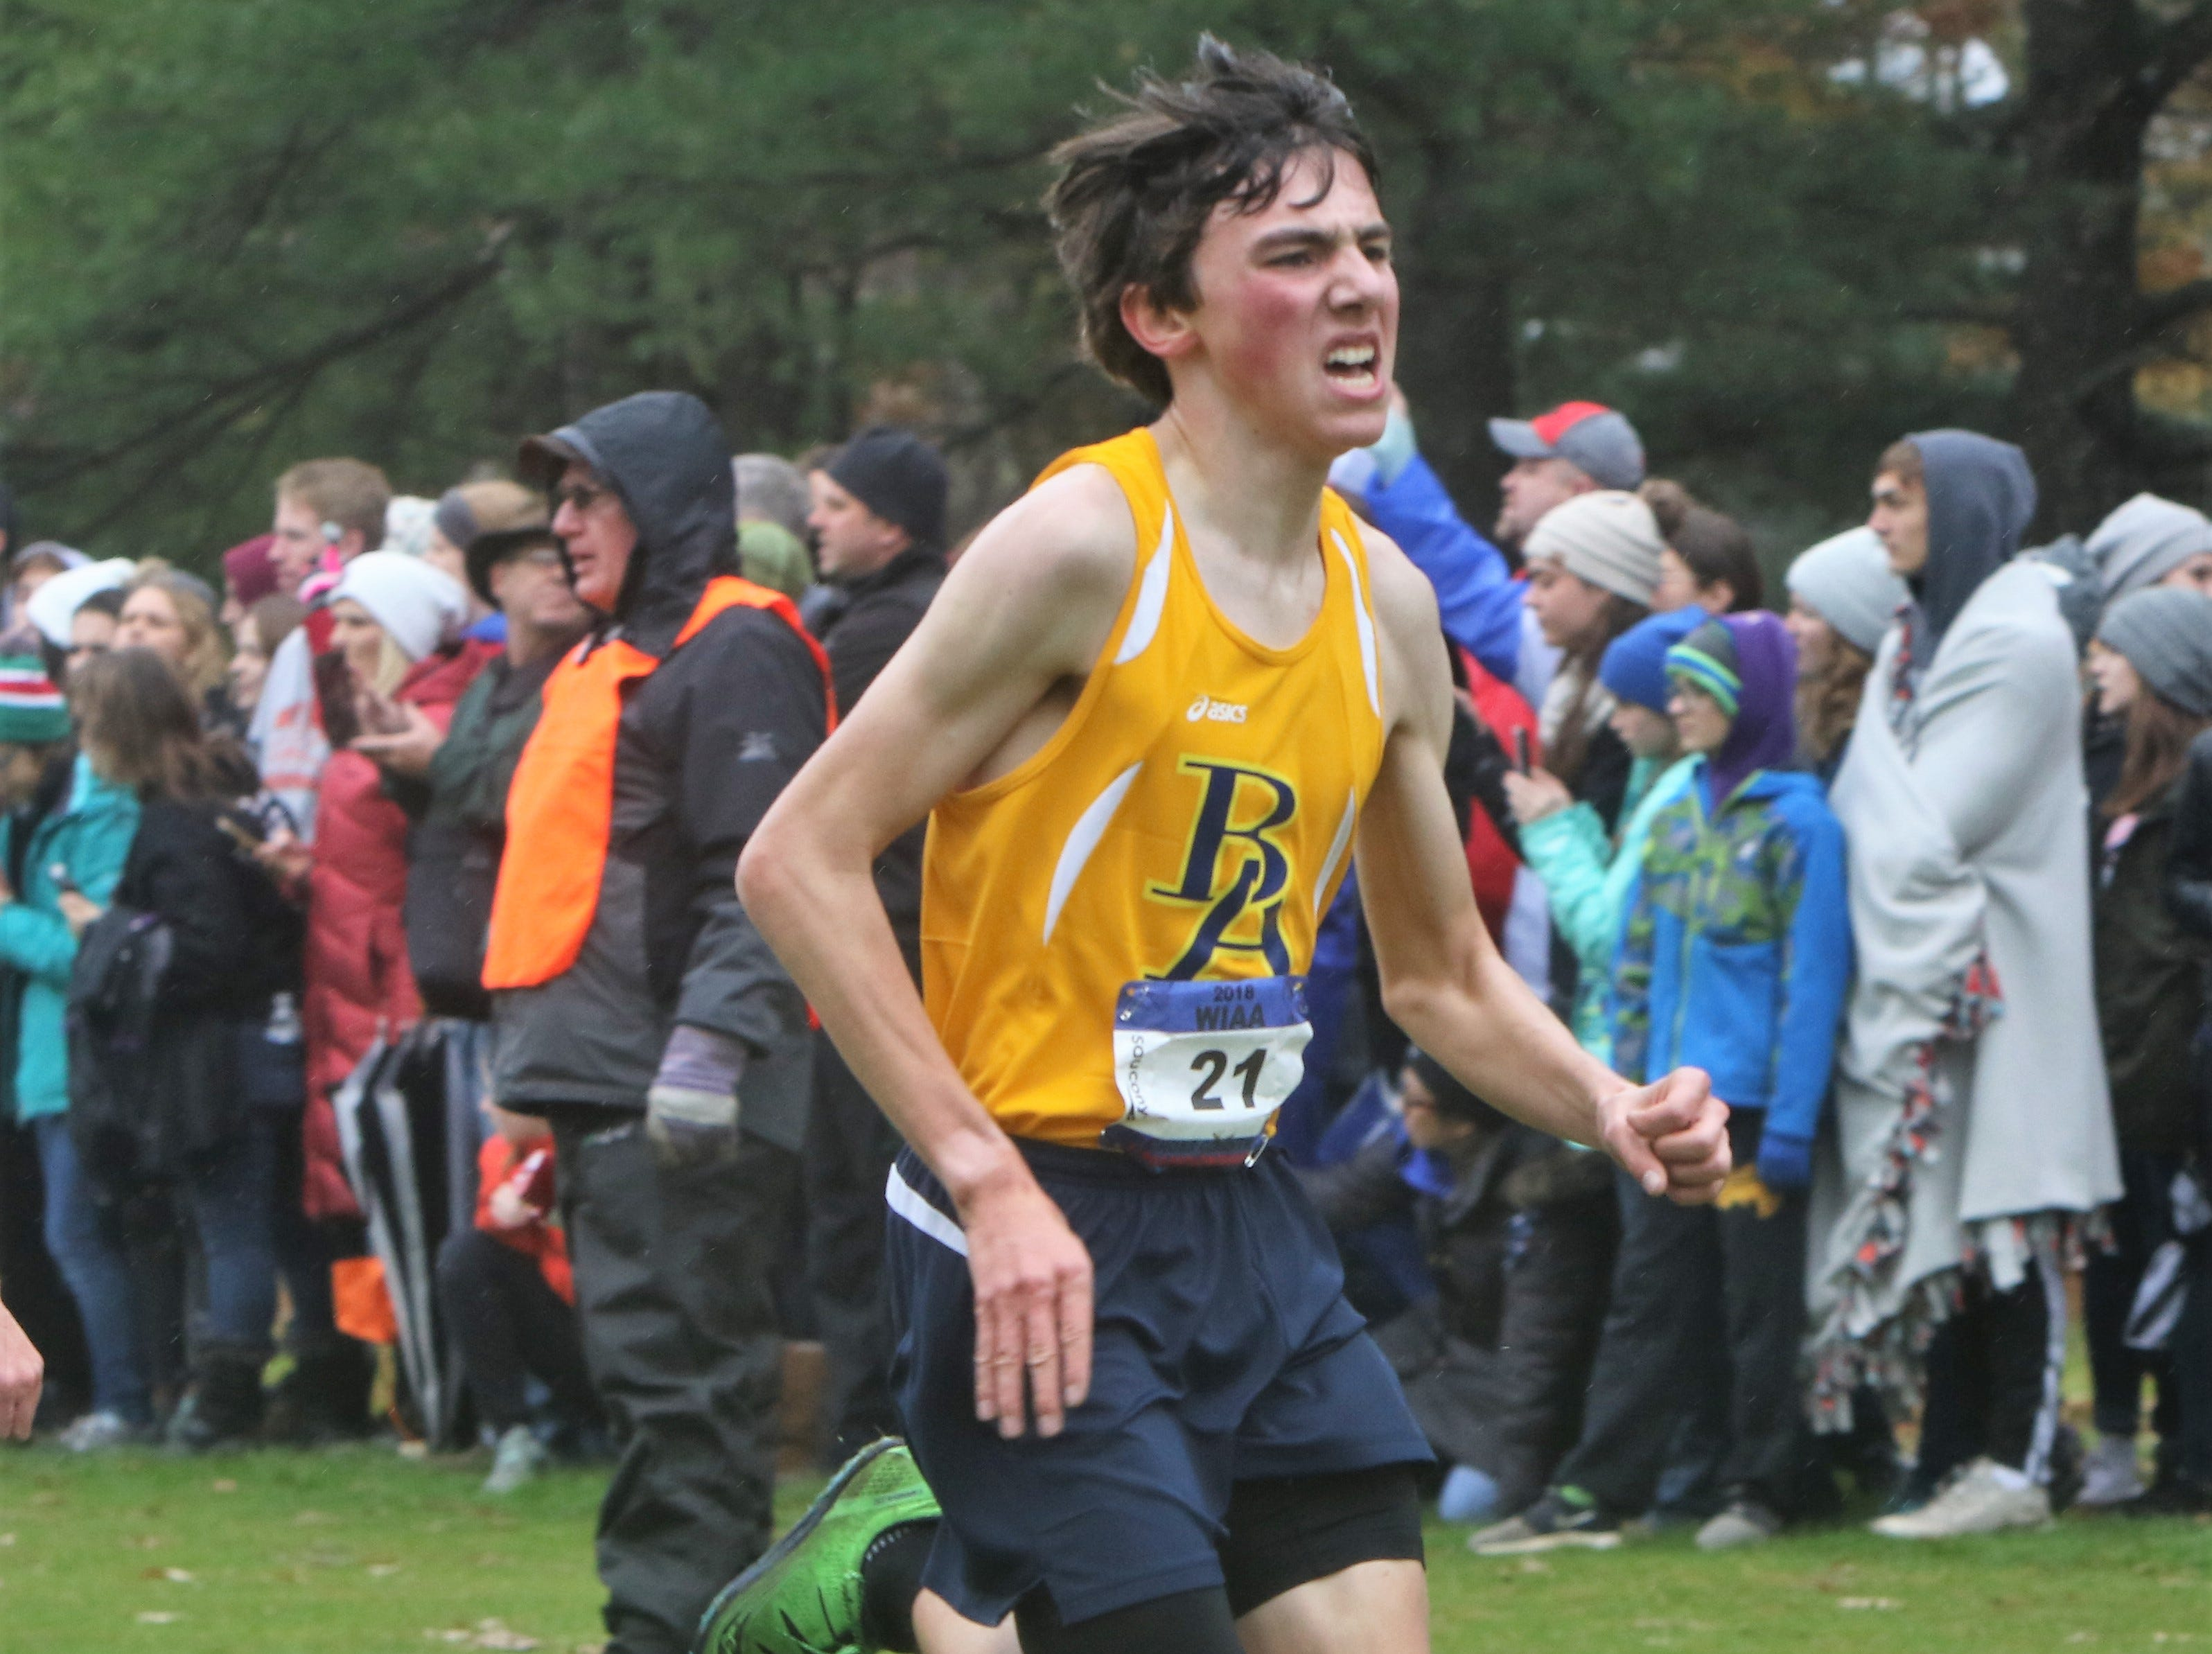 Brookfield Academy freshman Nathaniel Osborne sprints toward the finish line at the WIAA state cross country meet at Ridges Golf Course in Wisconsin Rapids.